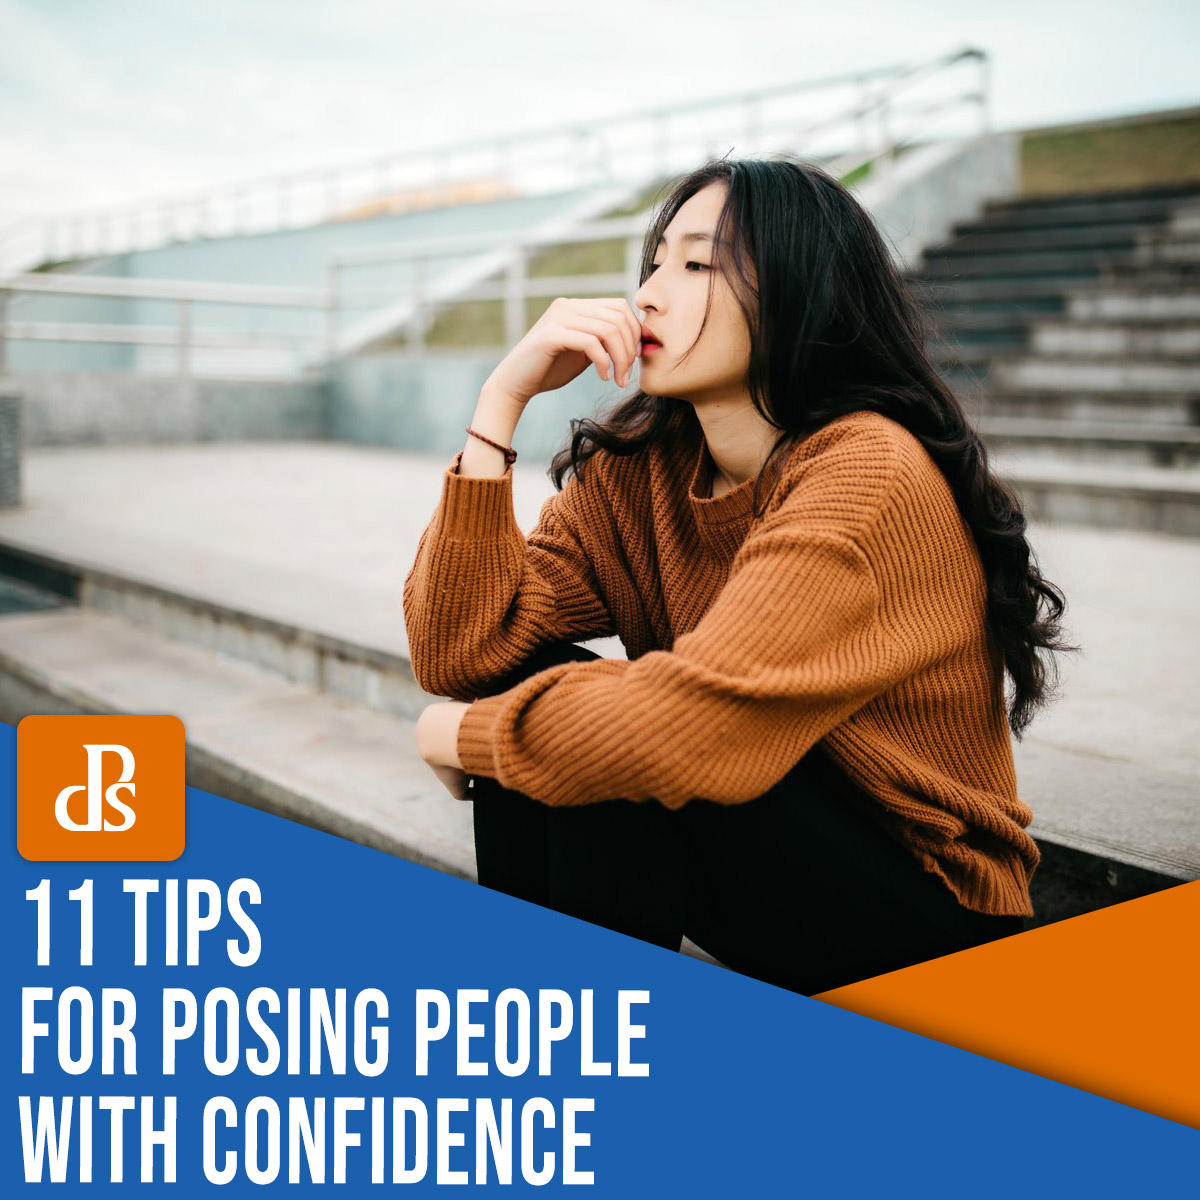 11 tips for posing people with confidence